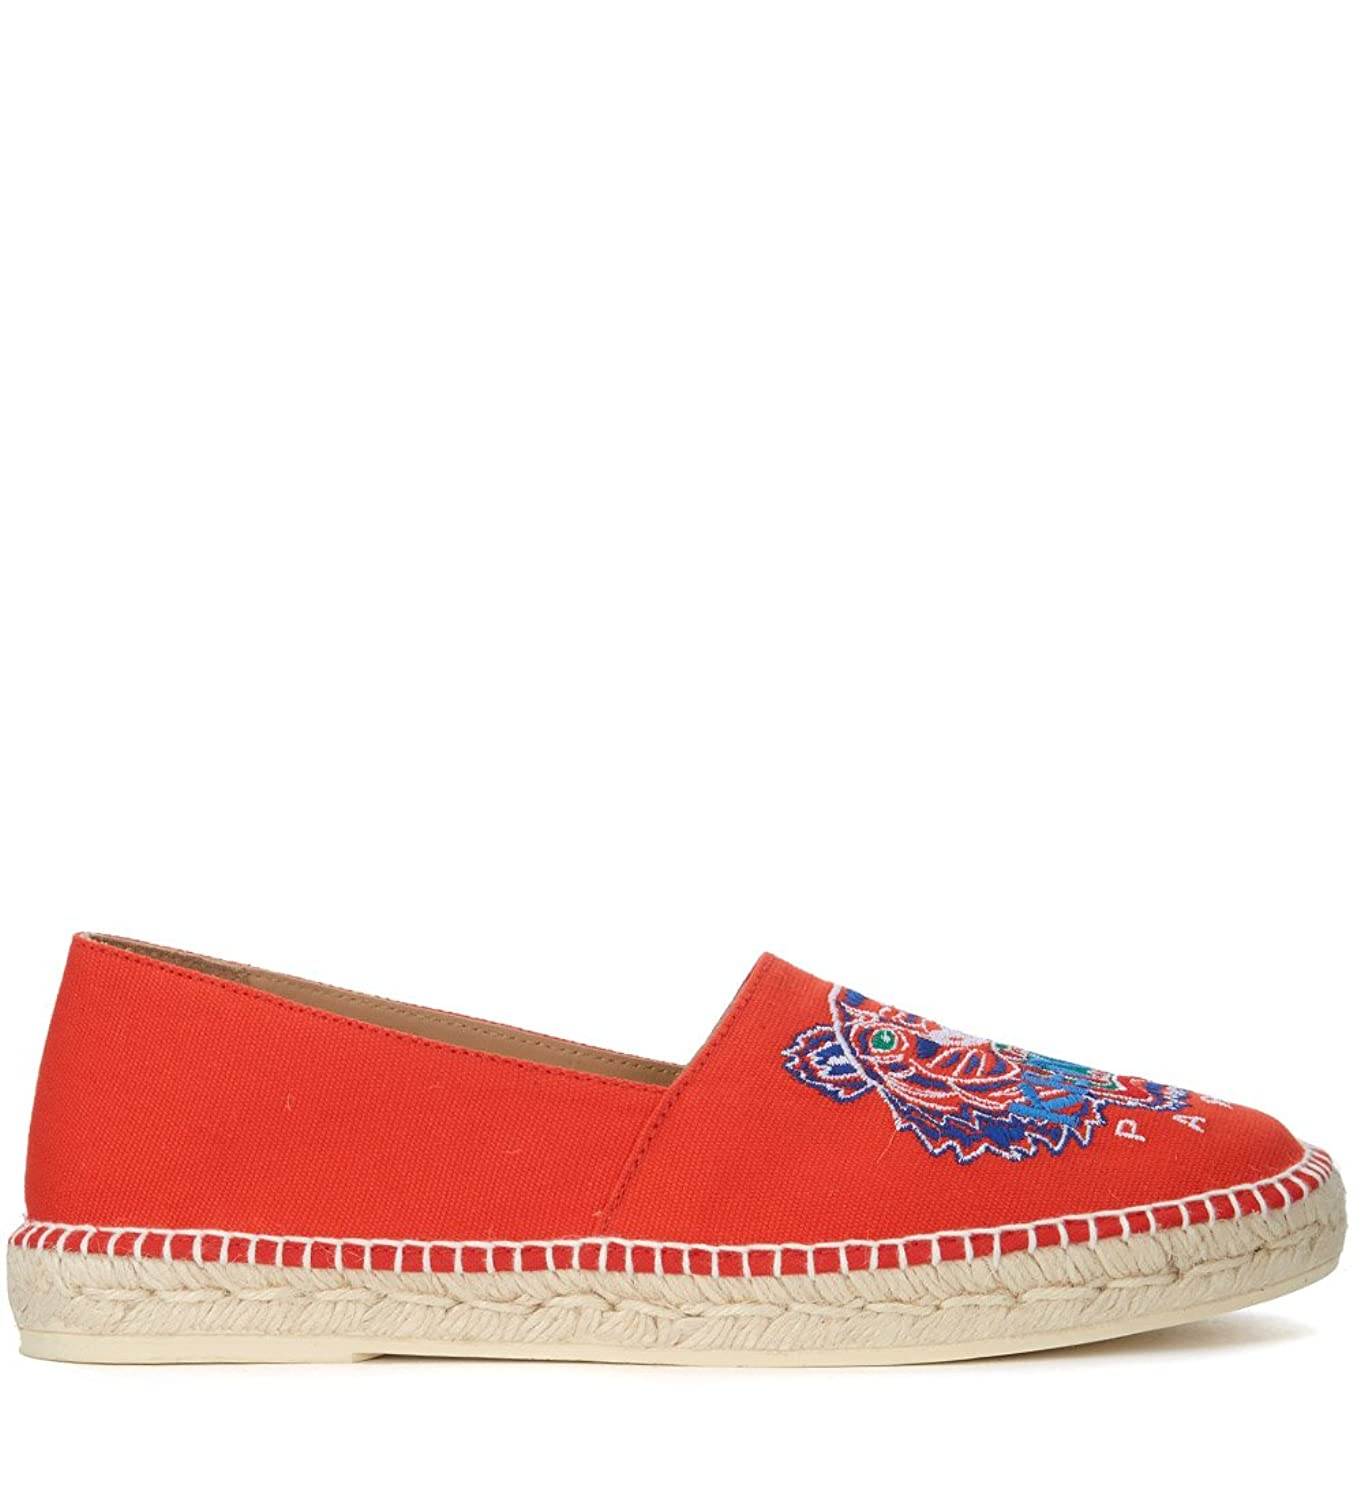 Men's Red Cotton Espadrillas With Tiger